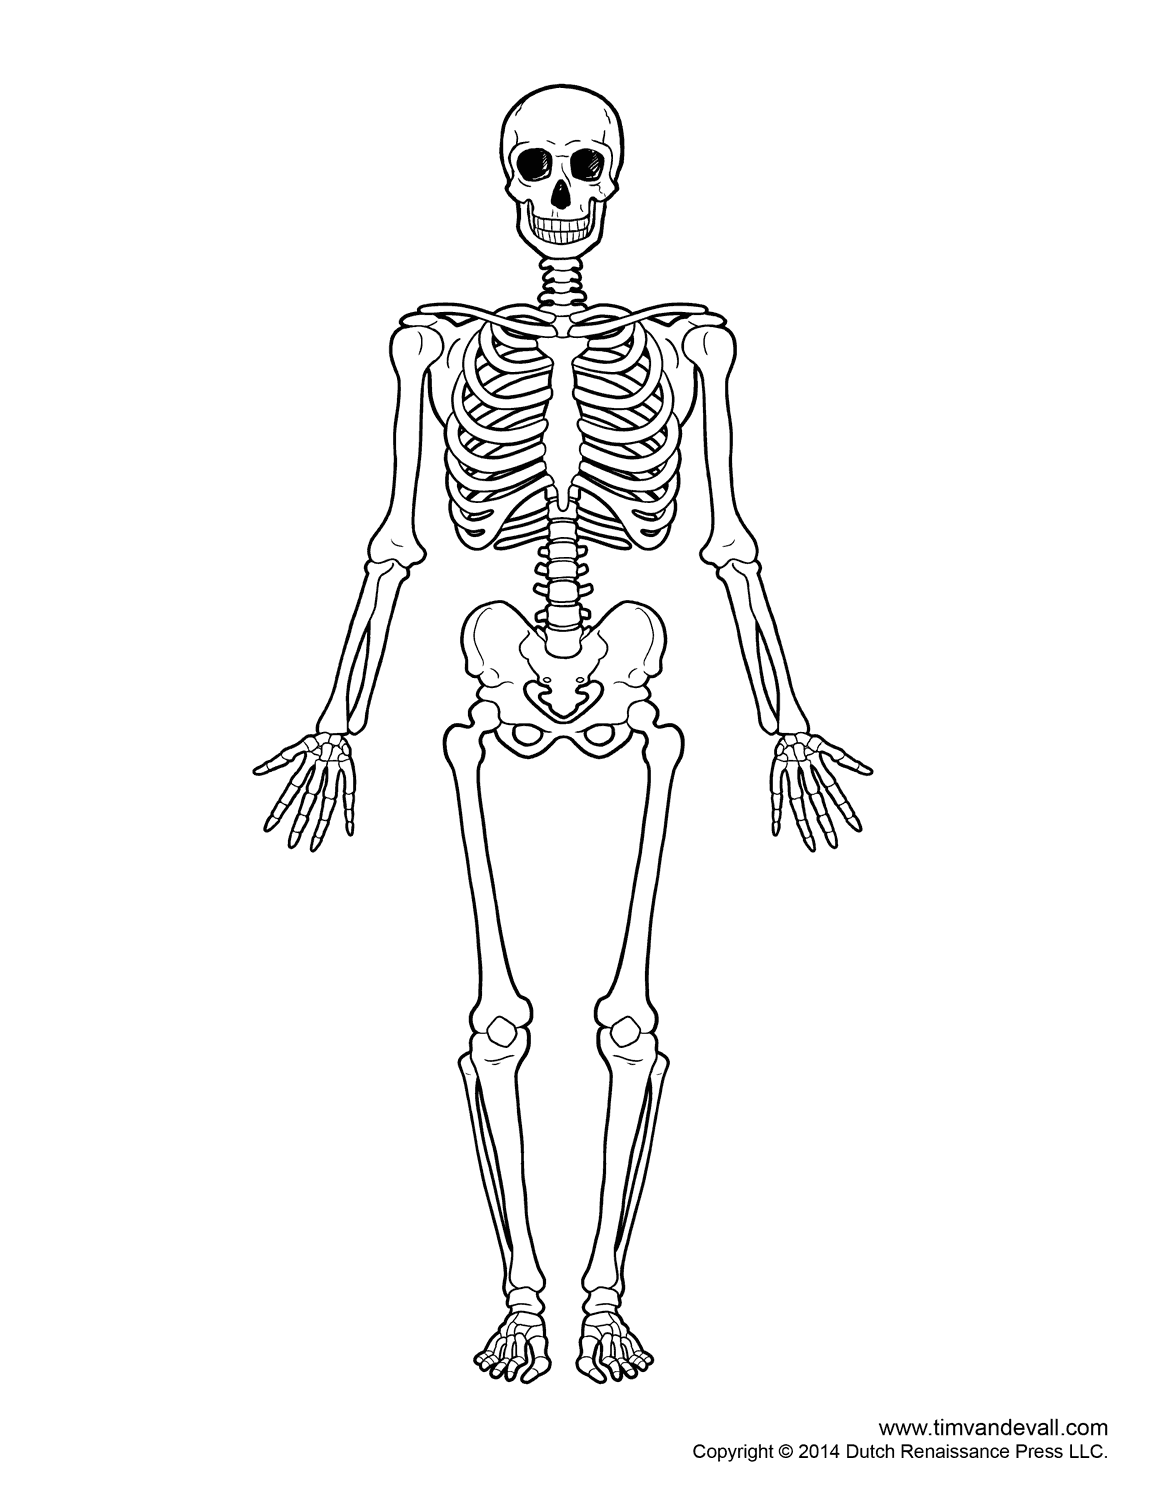 1159x1500 Skeleton Outline With Skeleton Images Collection 41 Chandrakant